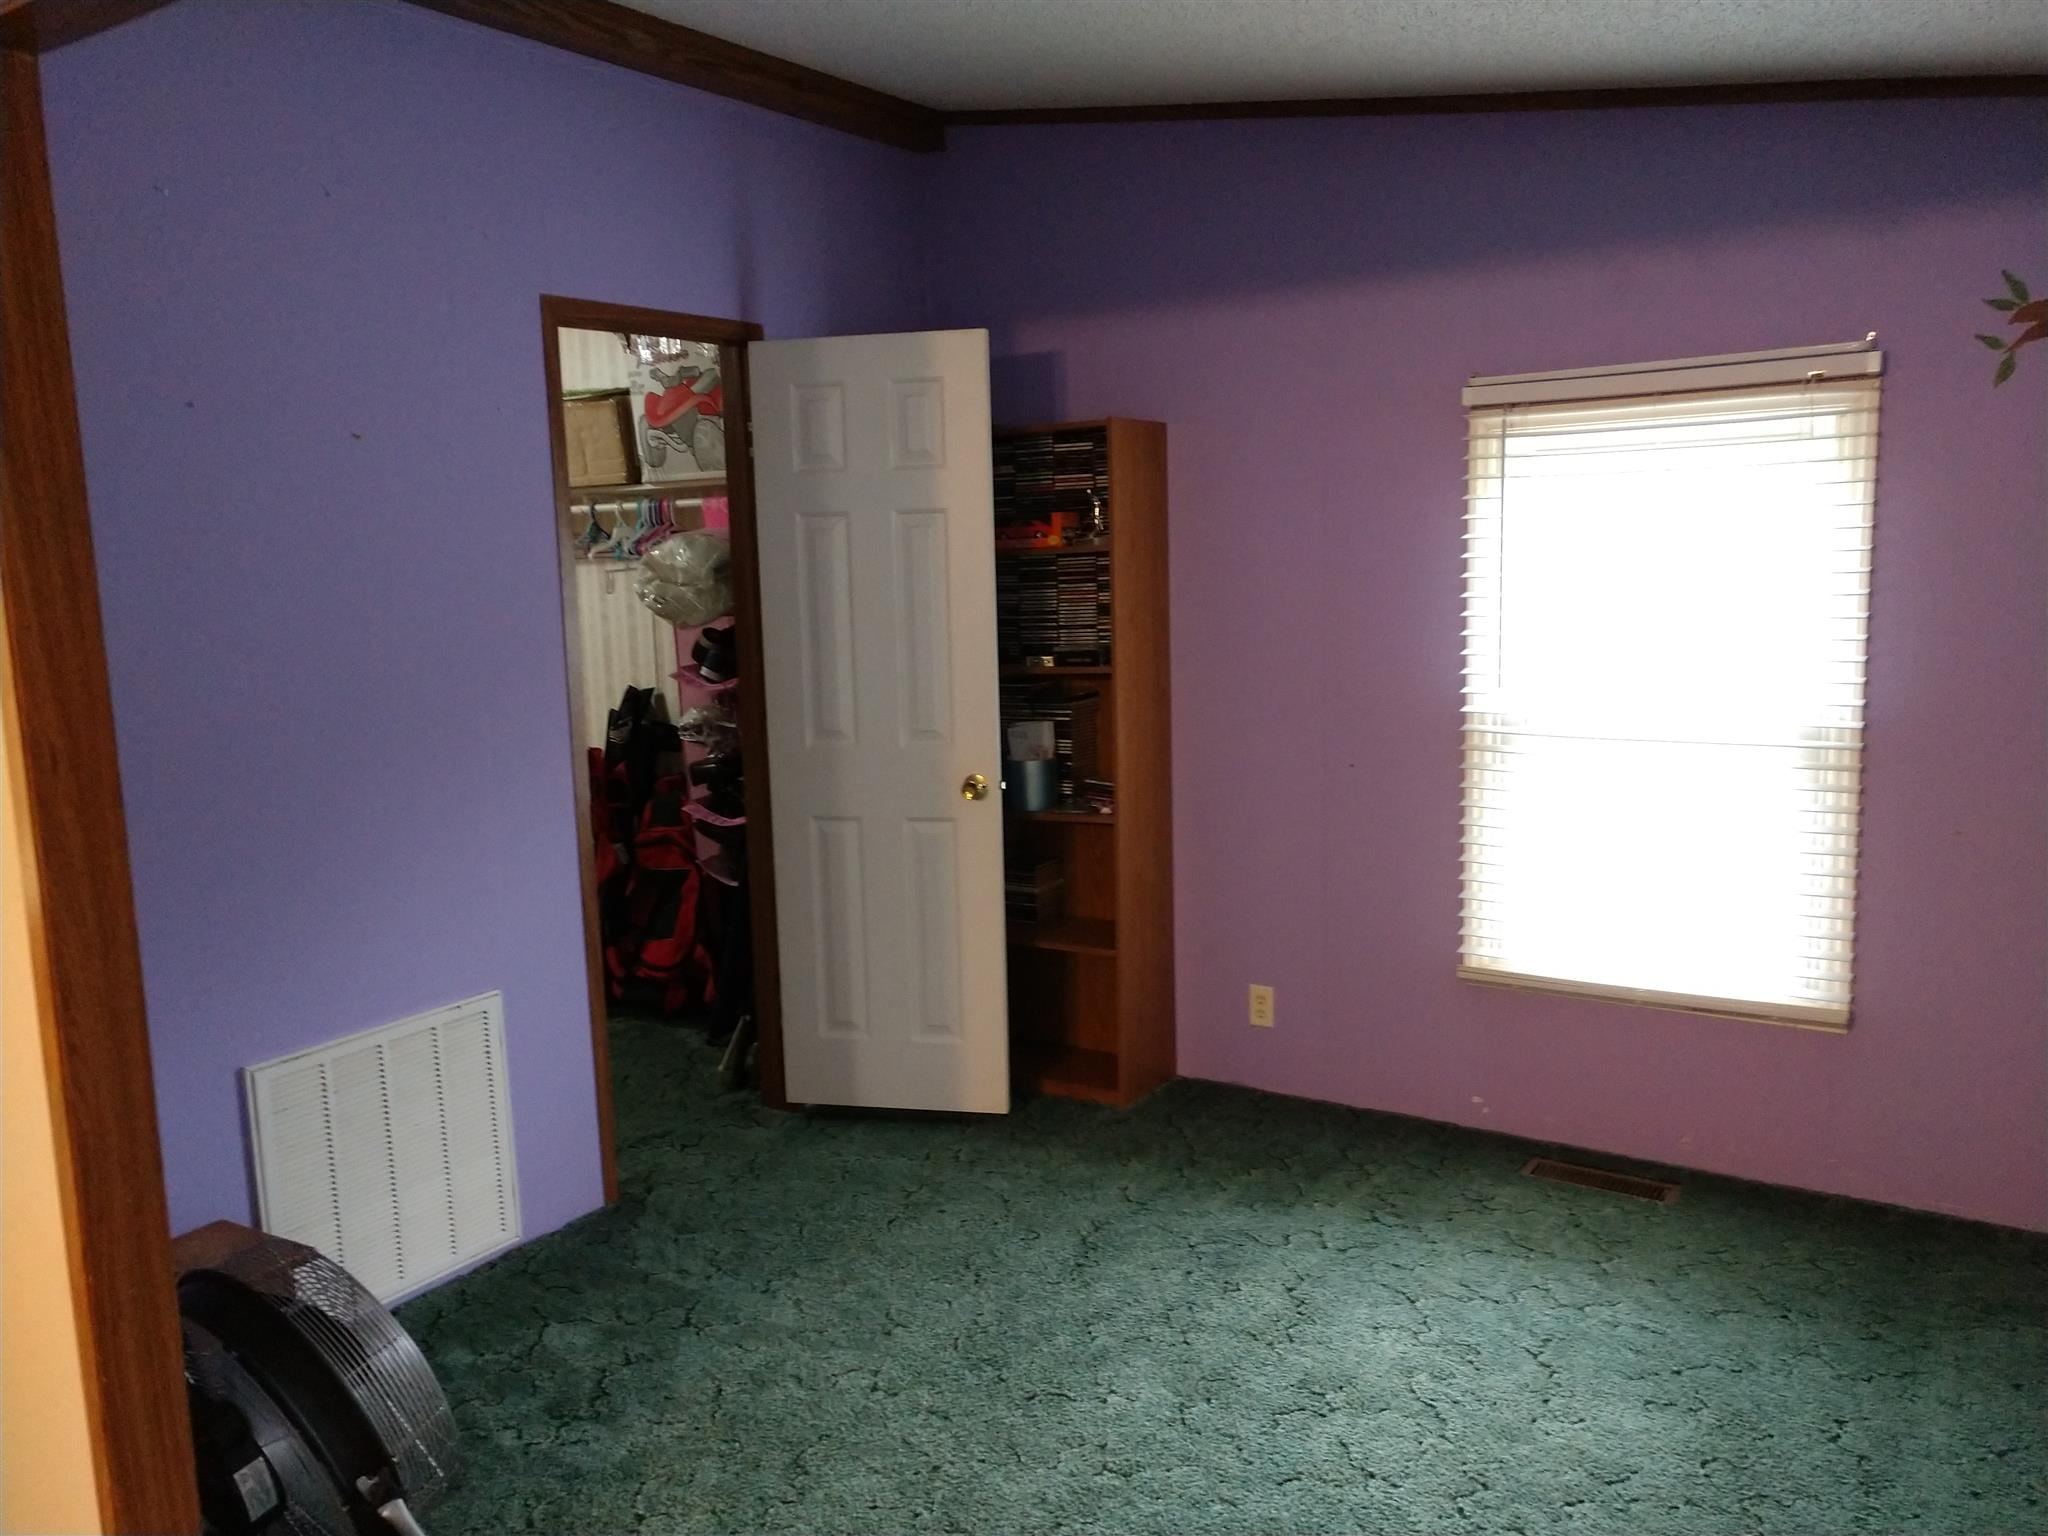 197 Switchboard Rd - photo 20